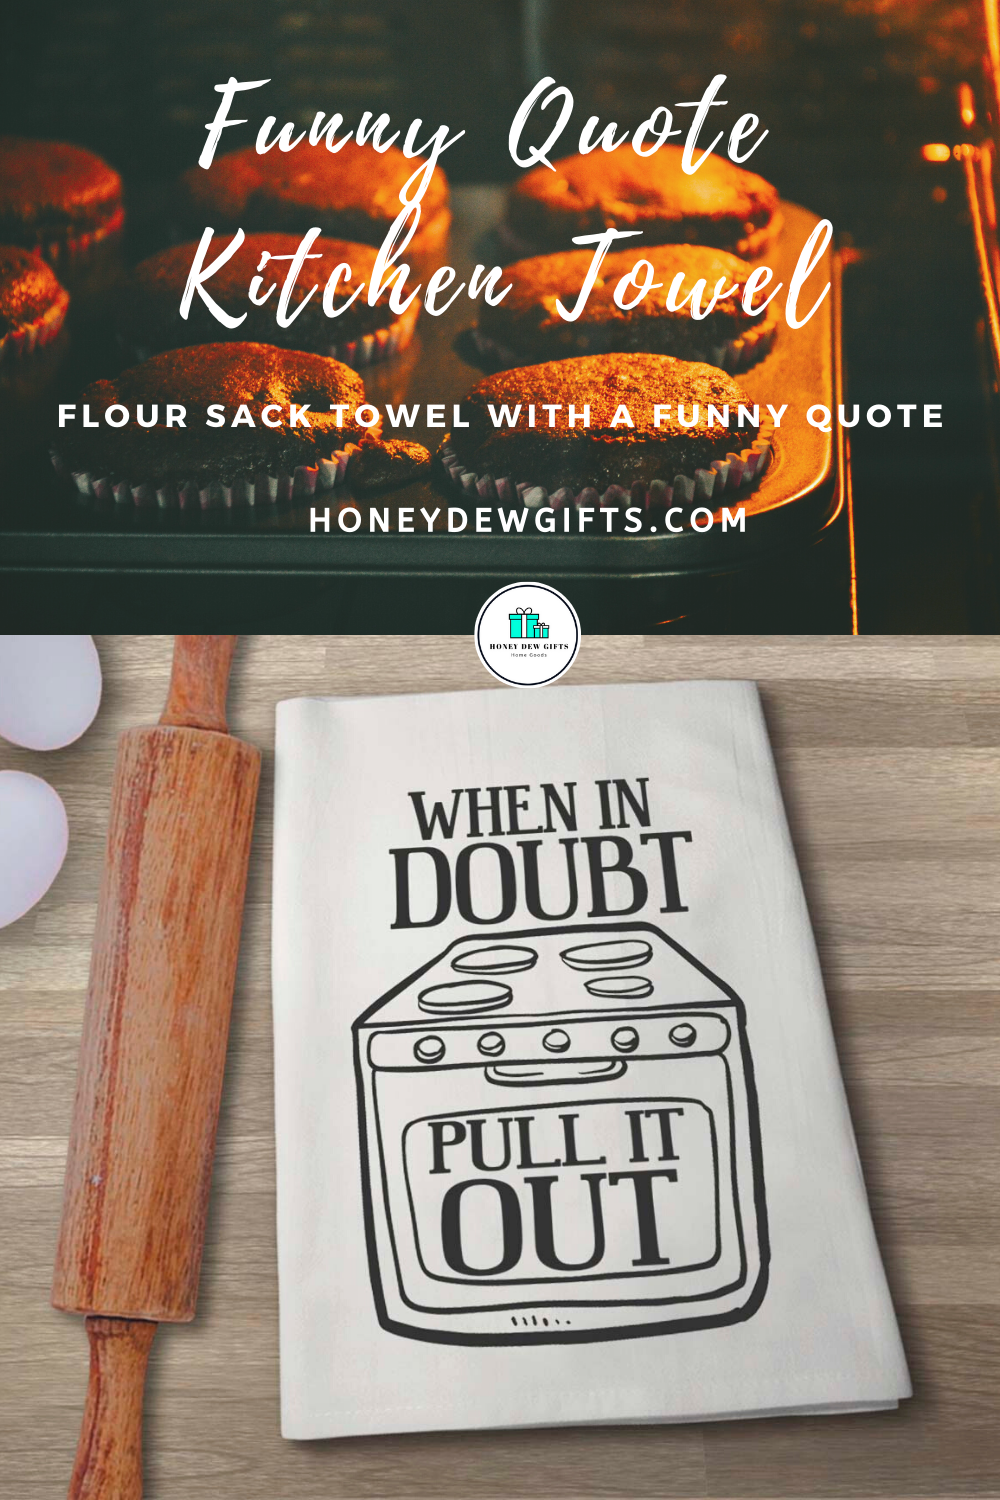 Funny Quote Kitchen Towel Flour Sack Towels Kitchen Humor Vinyl Gifts